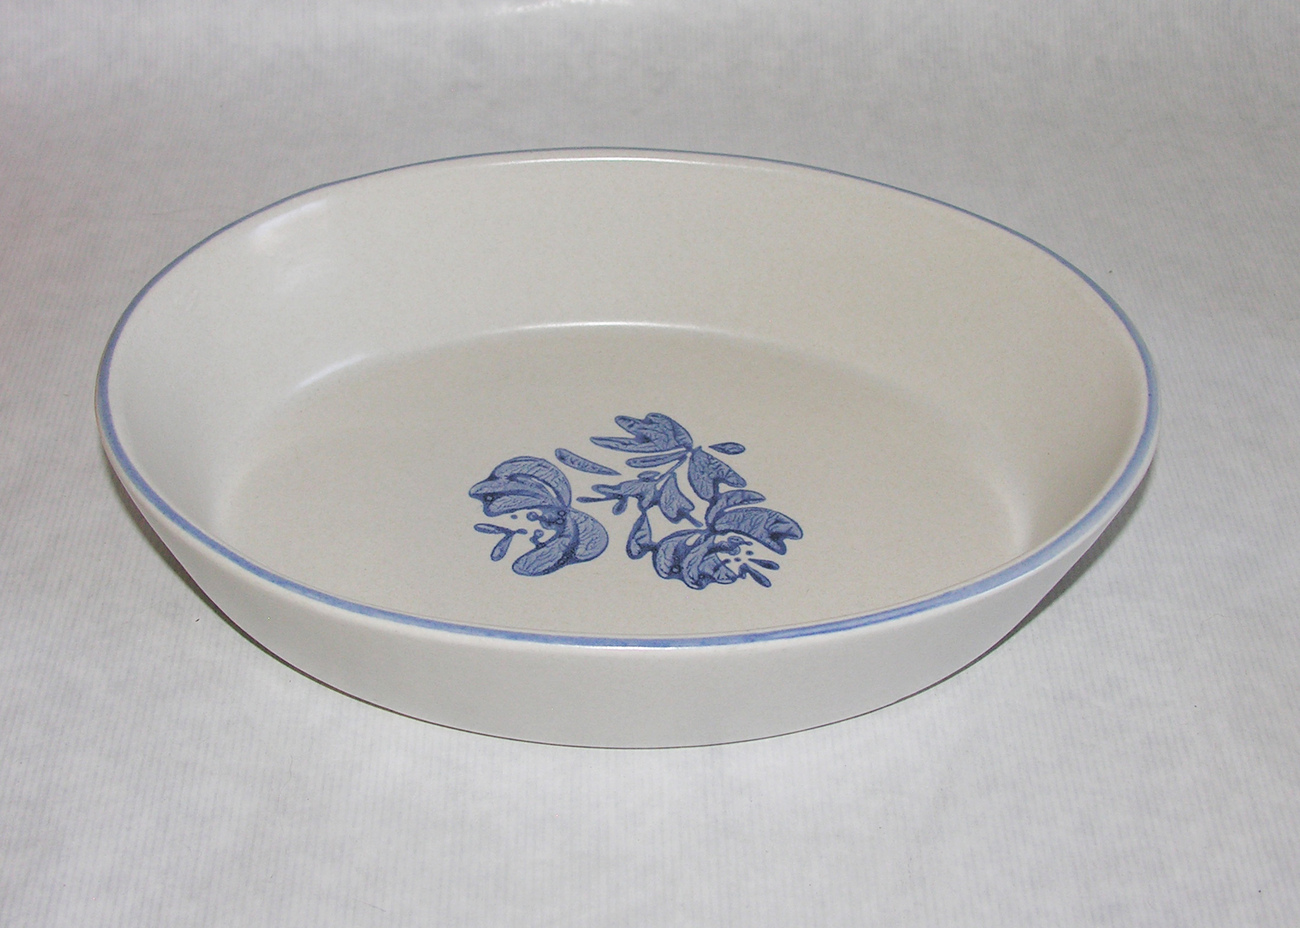 Yorktowne_serving_bowl_1